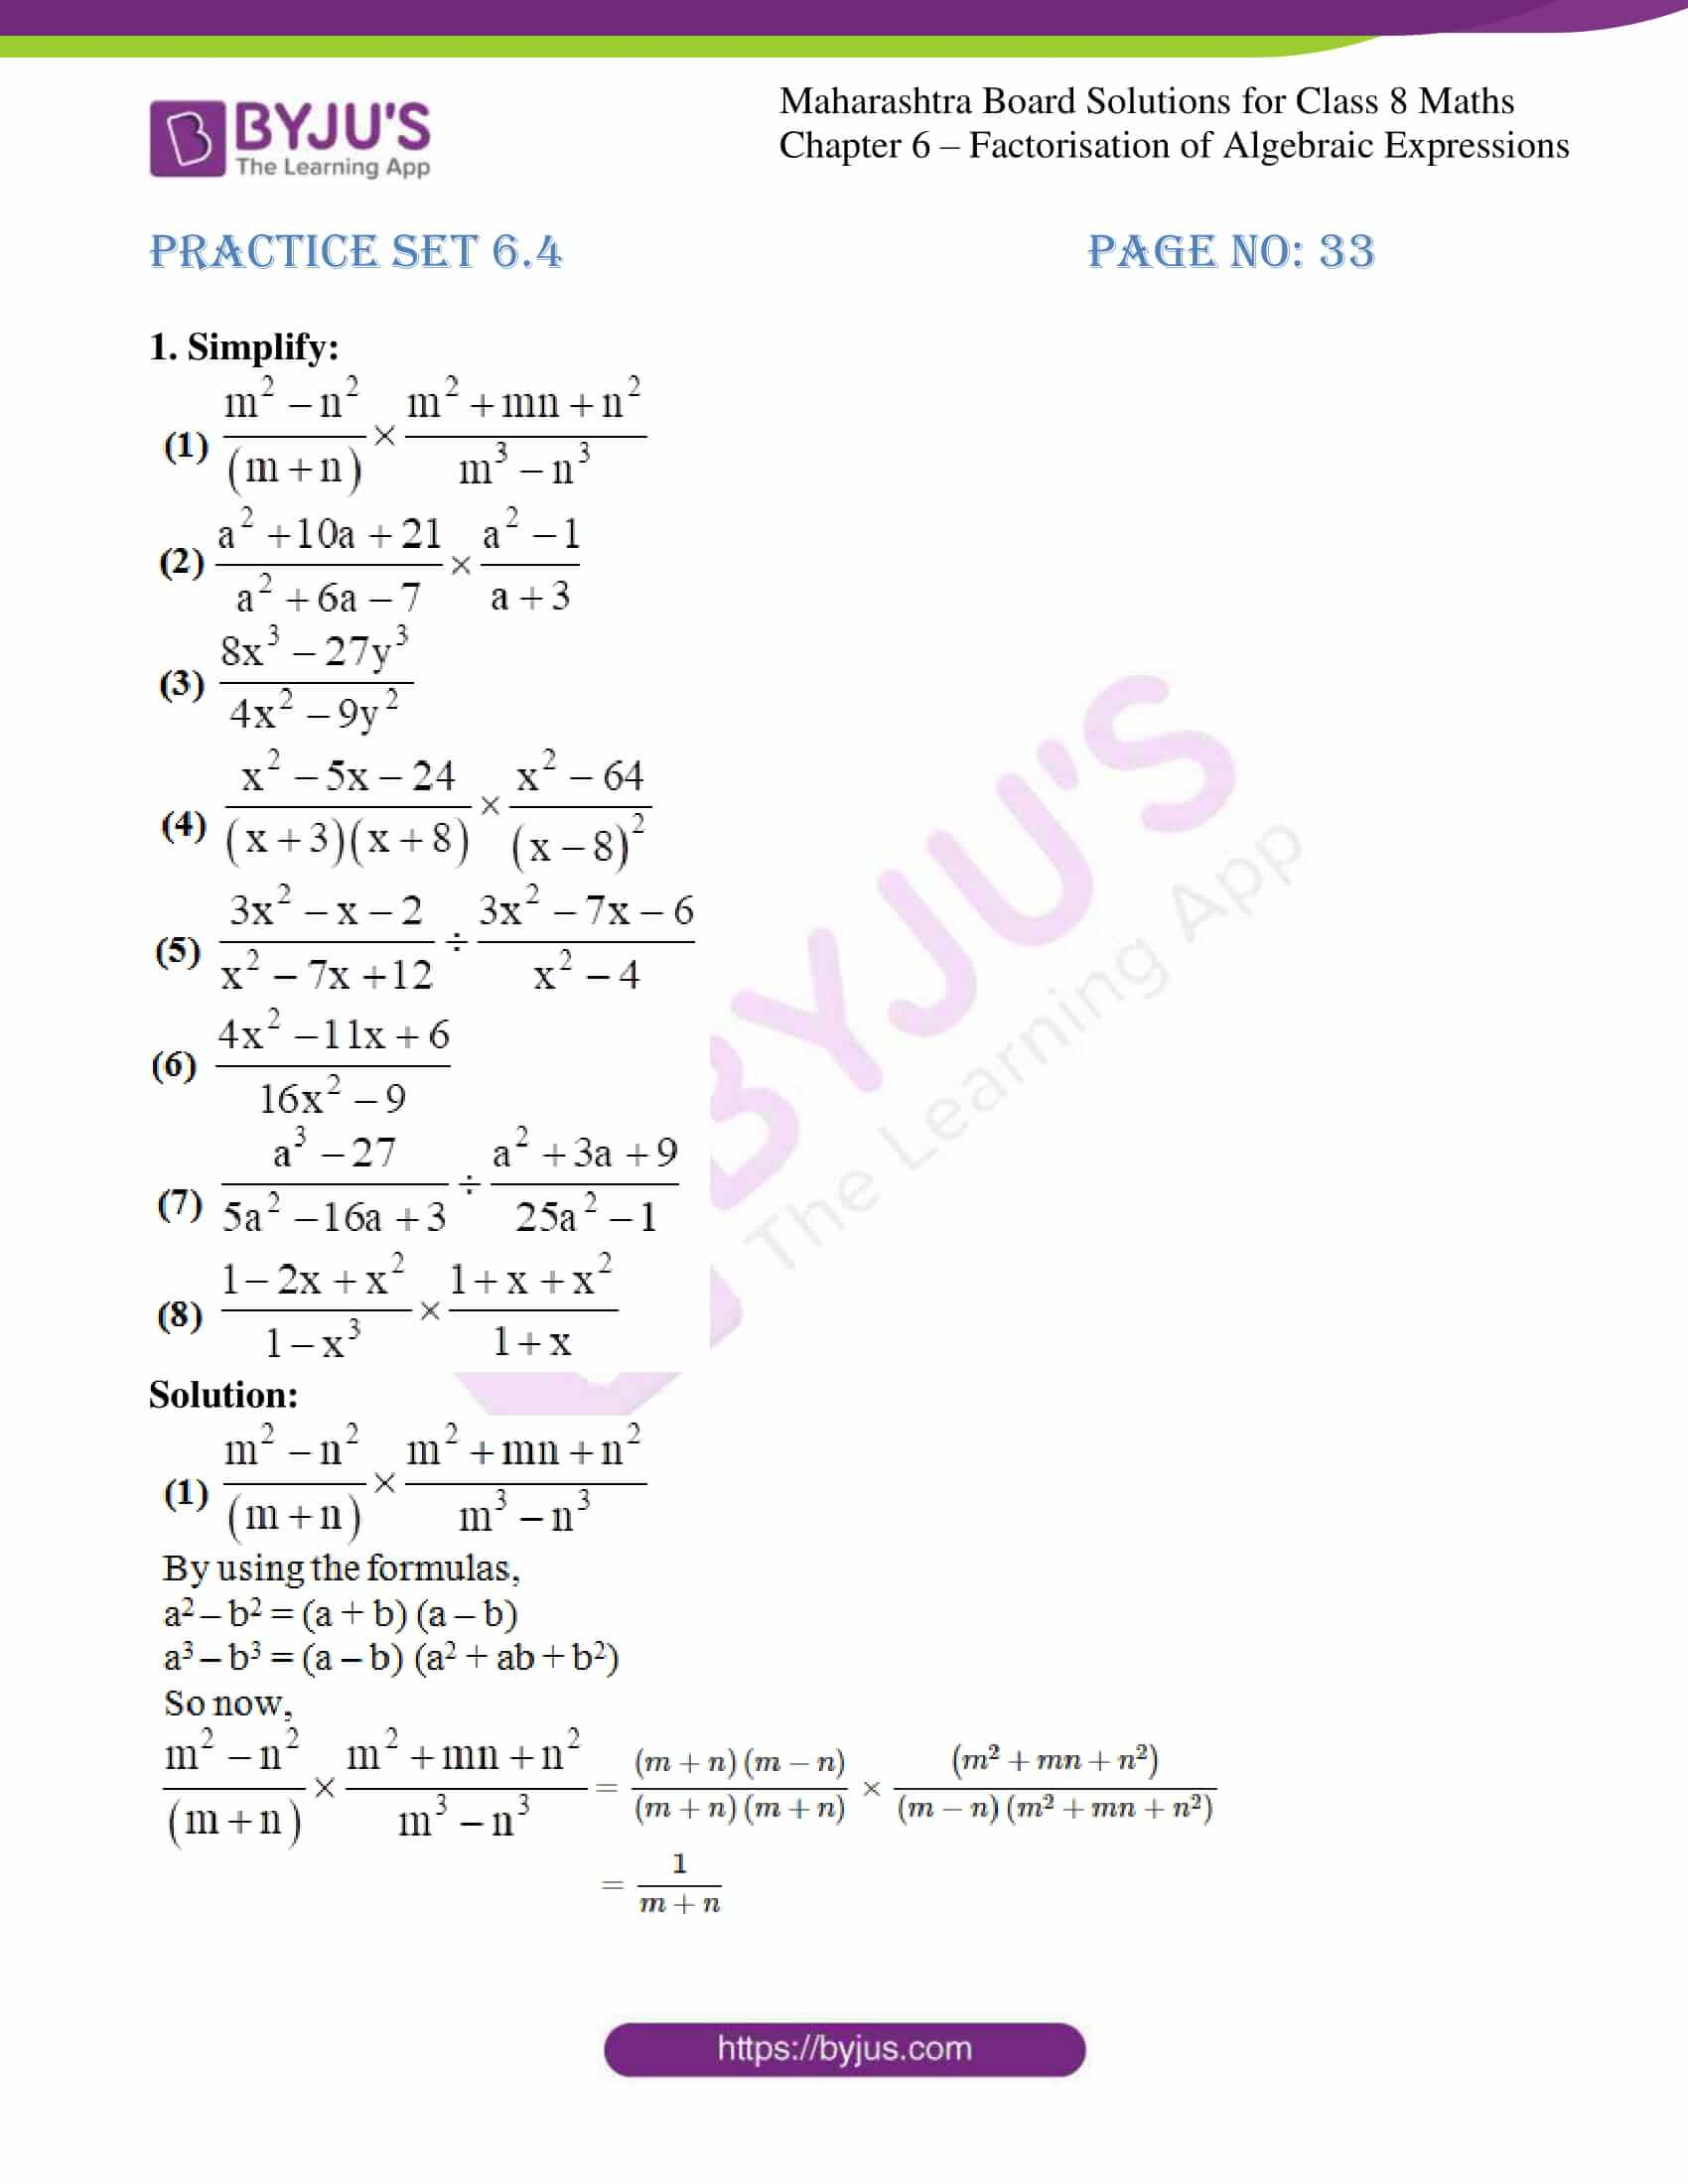 msbshse sol for class 8 maths chapter 6 12